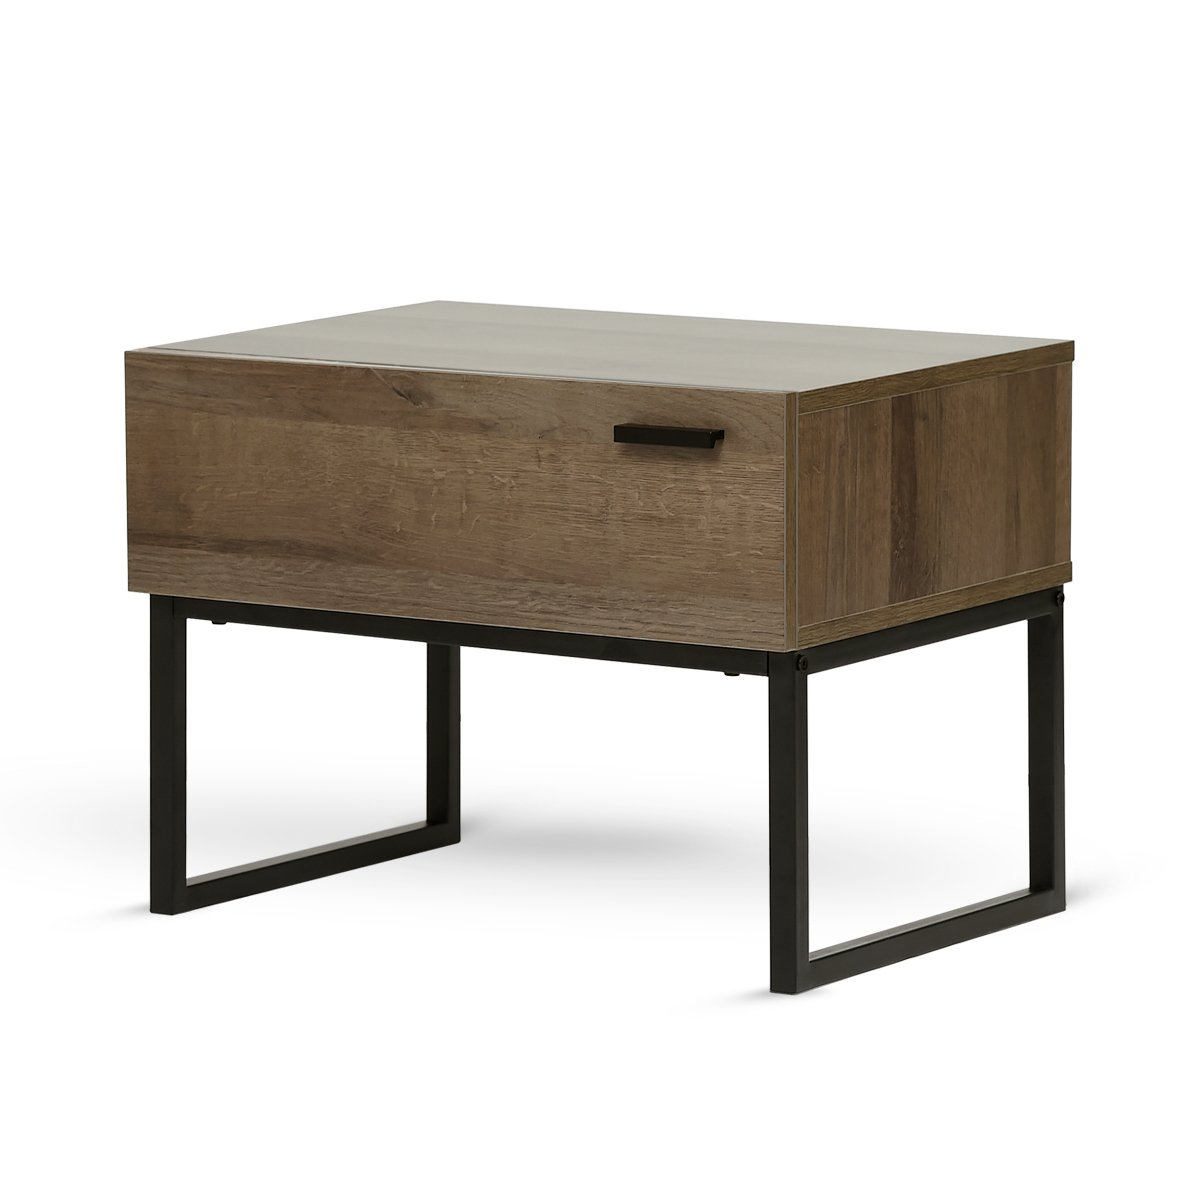 1 Drawer Nightstands for Living Room or Bedroom, Oak Finish with Black Metal Legs (Gray Oak) WLIVE PC-BJG-SNG1A-Q1-N